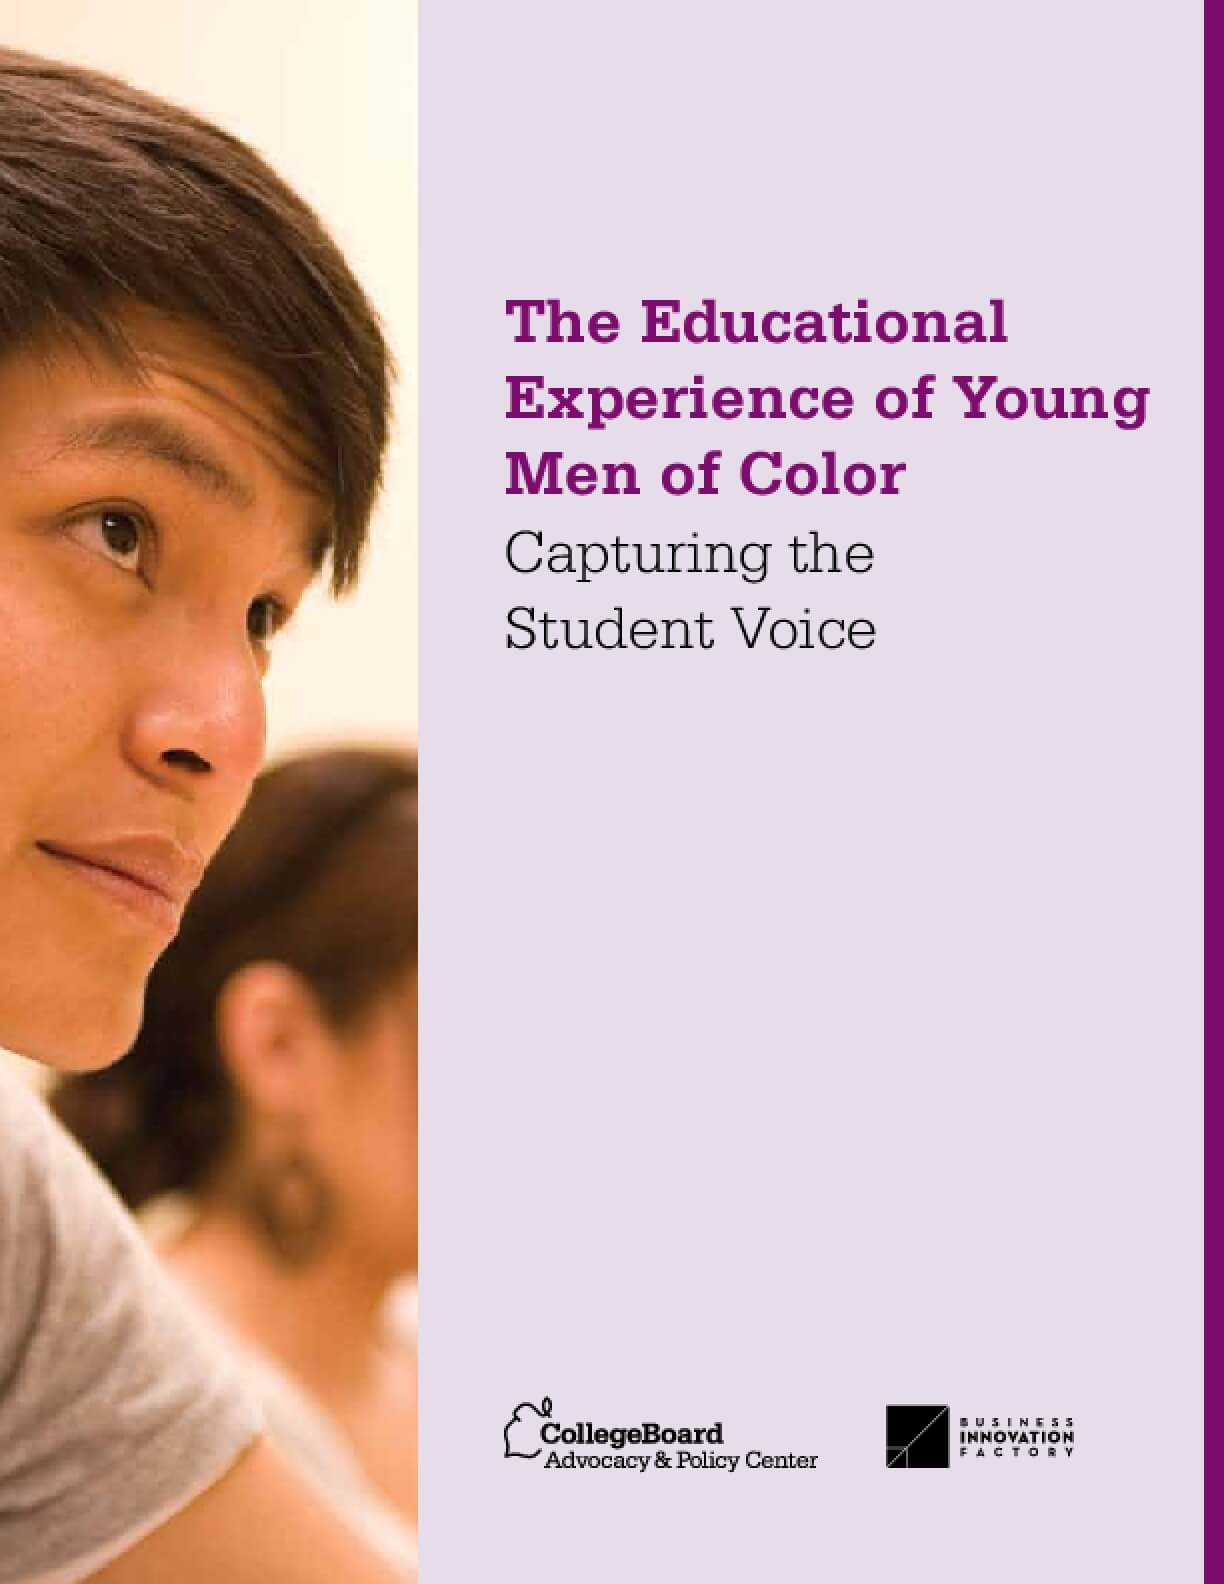 The Educational Experience of Young Men of Color: Capturing the Student Voice